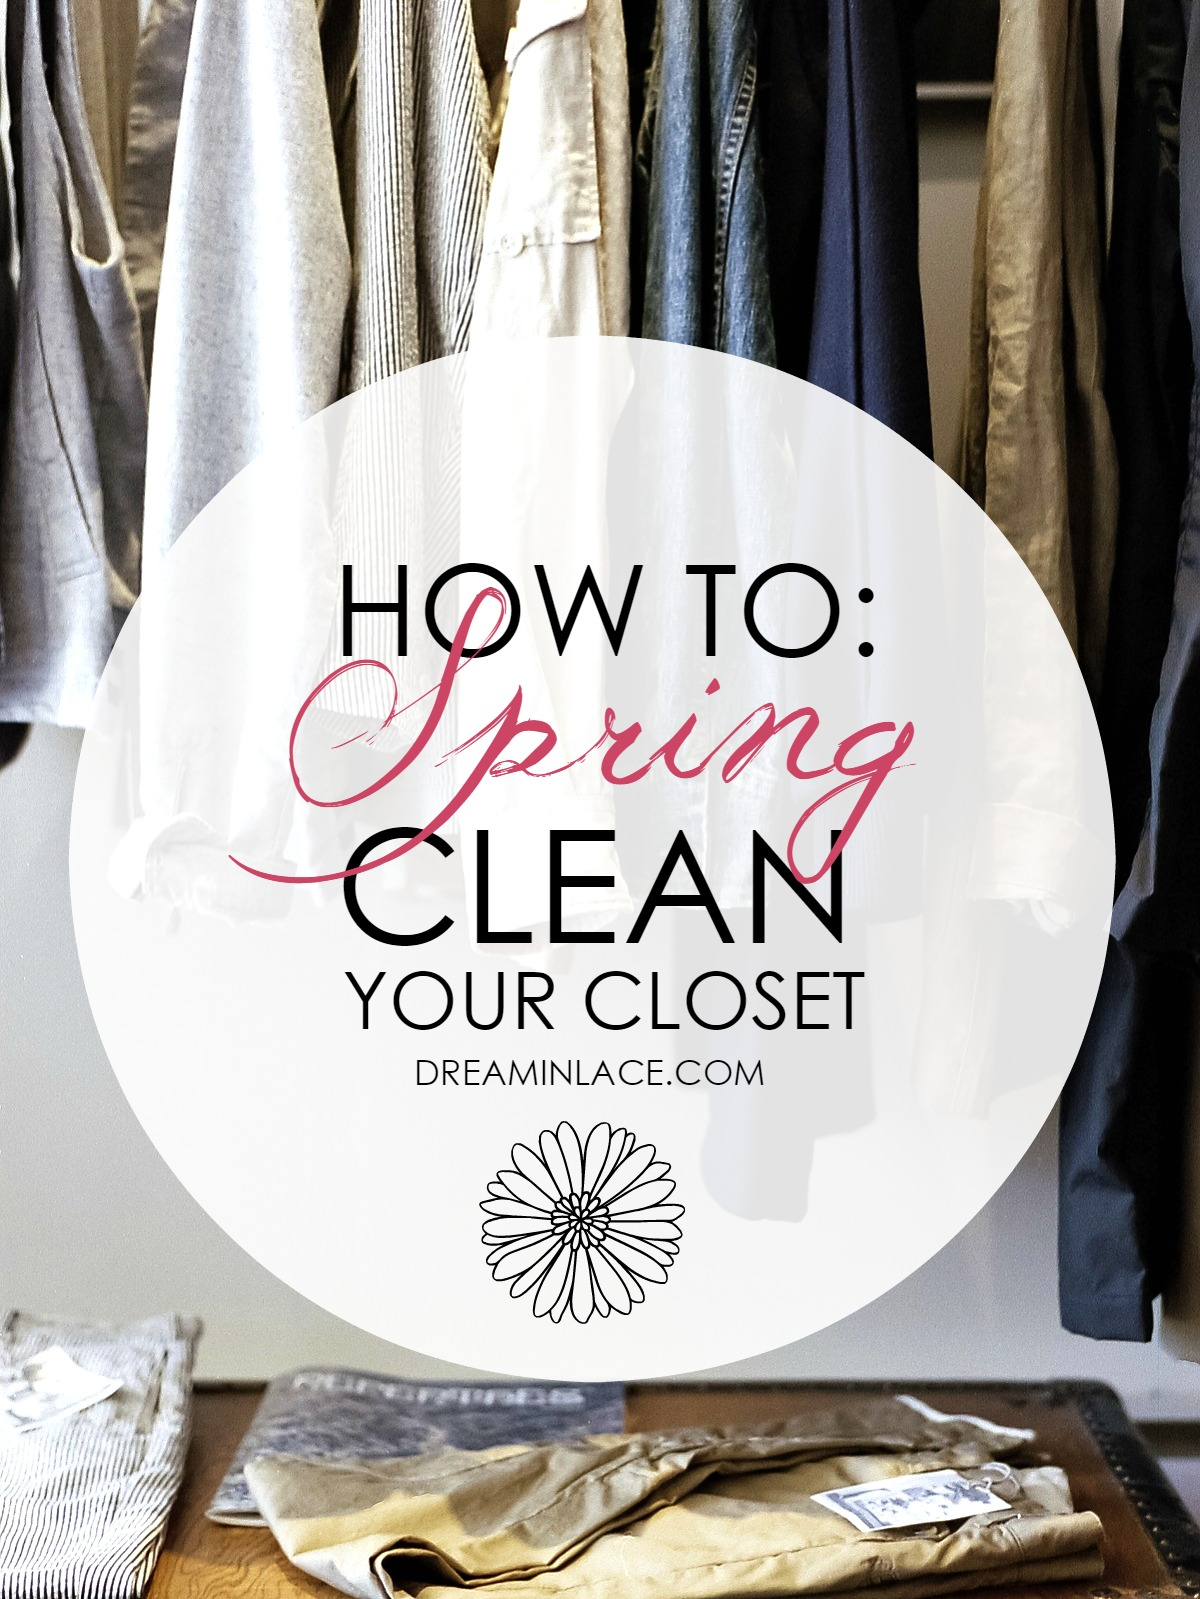 How to Spring Clean Your Closet - Dream in Lace